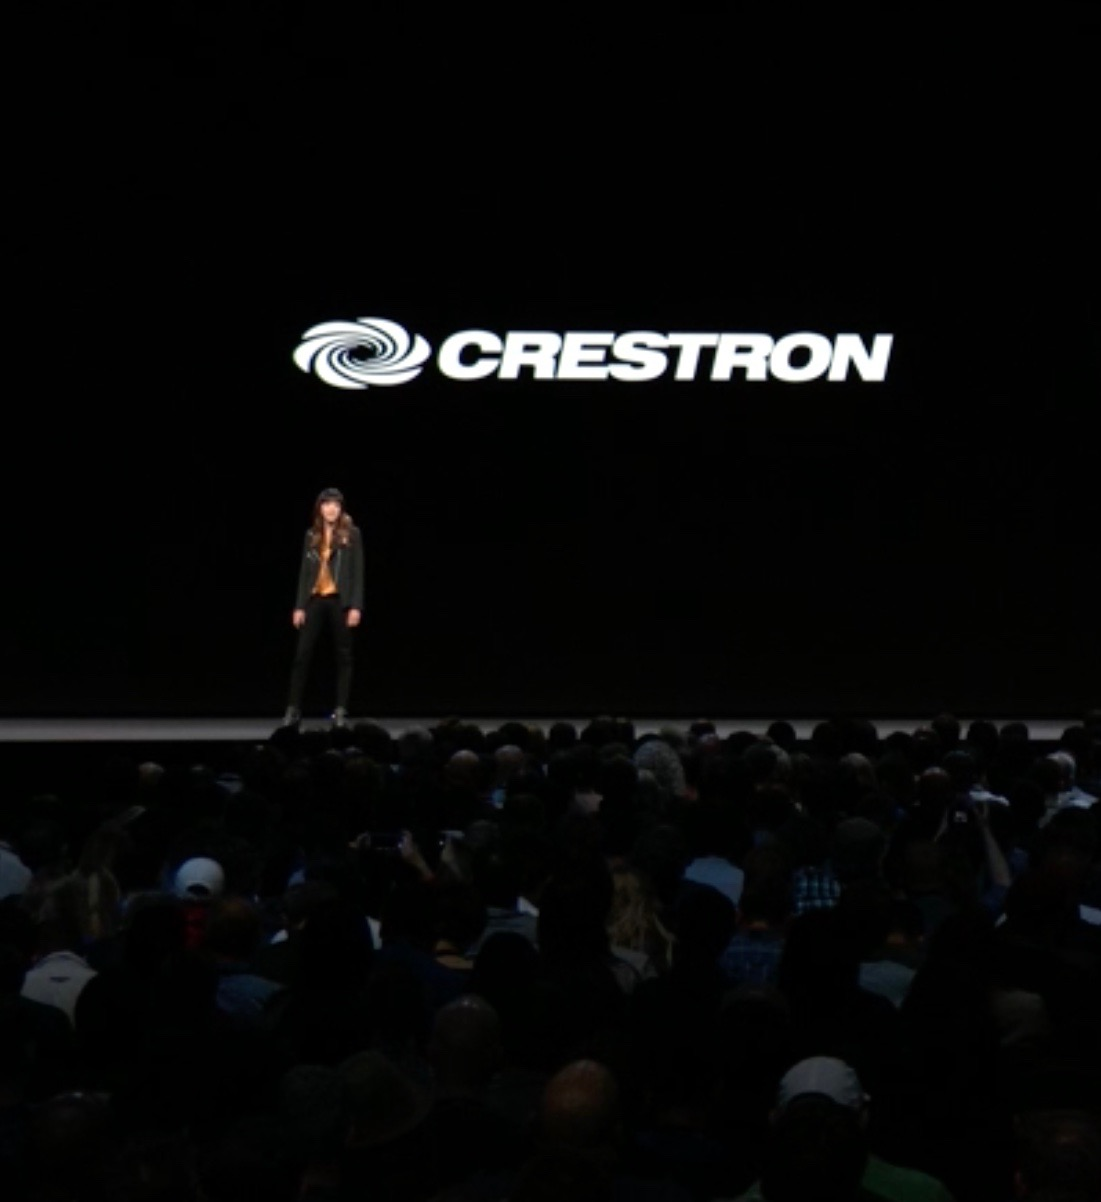 Crestron Integration with Apple TV, Siri, and HomeKit Announced